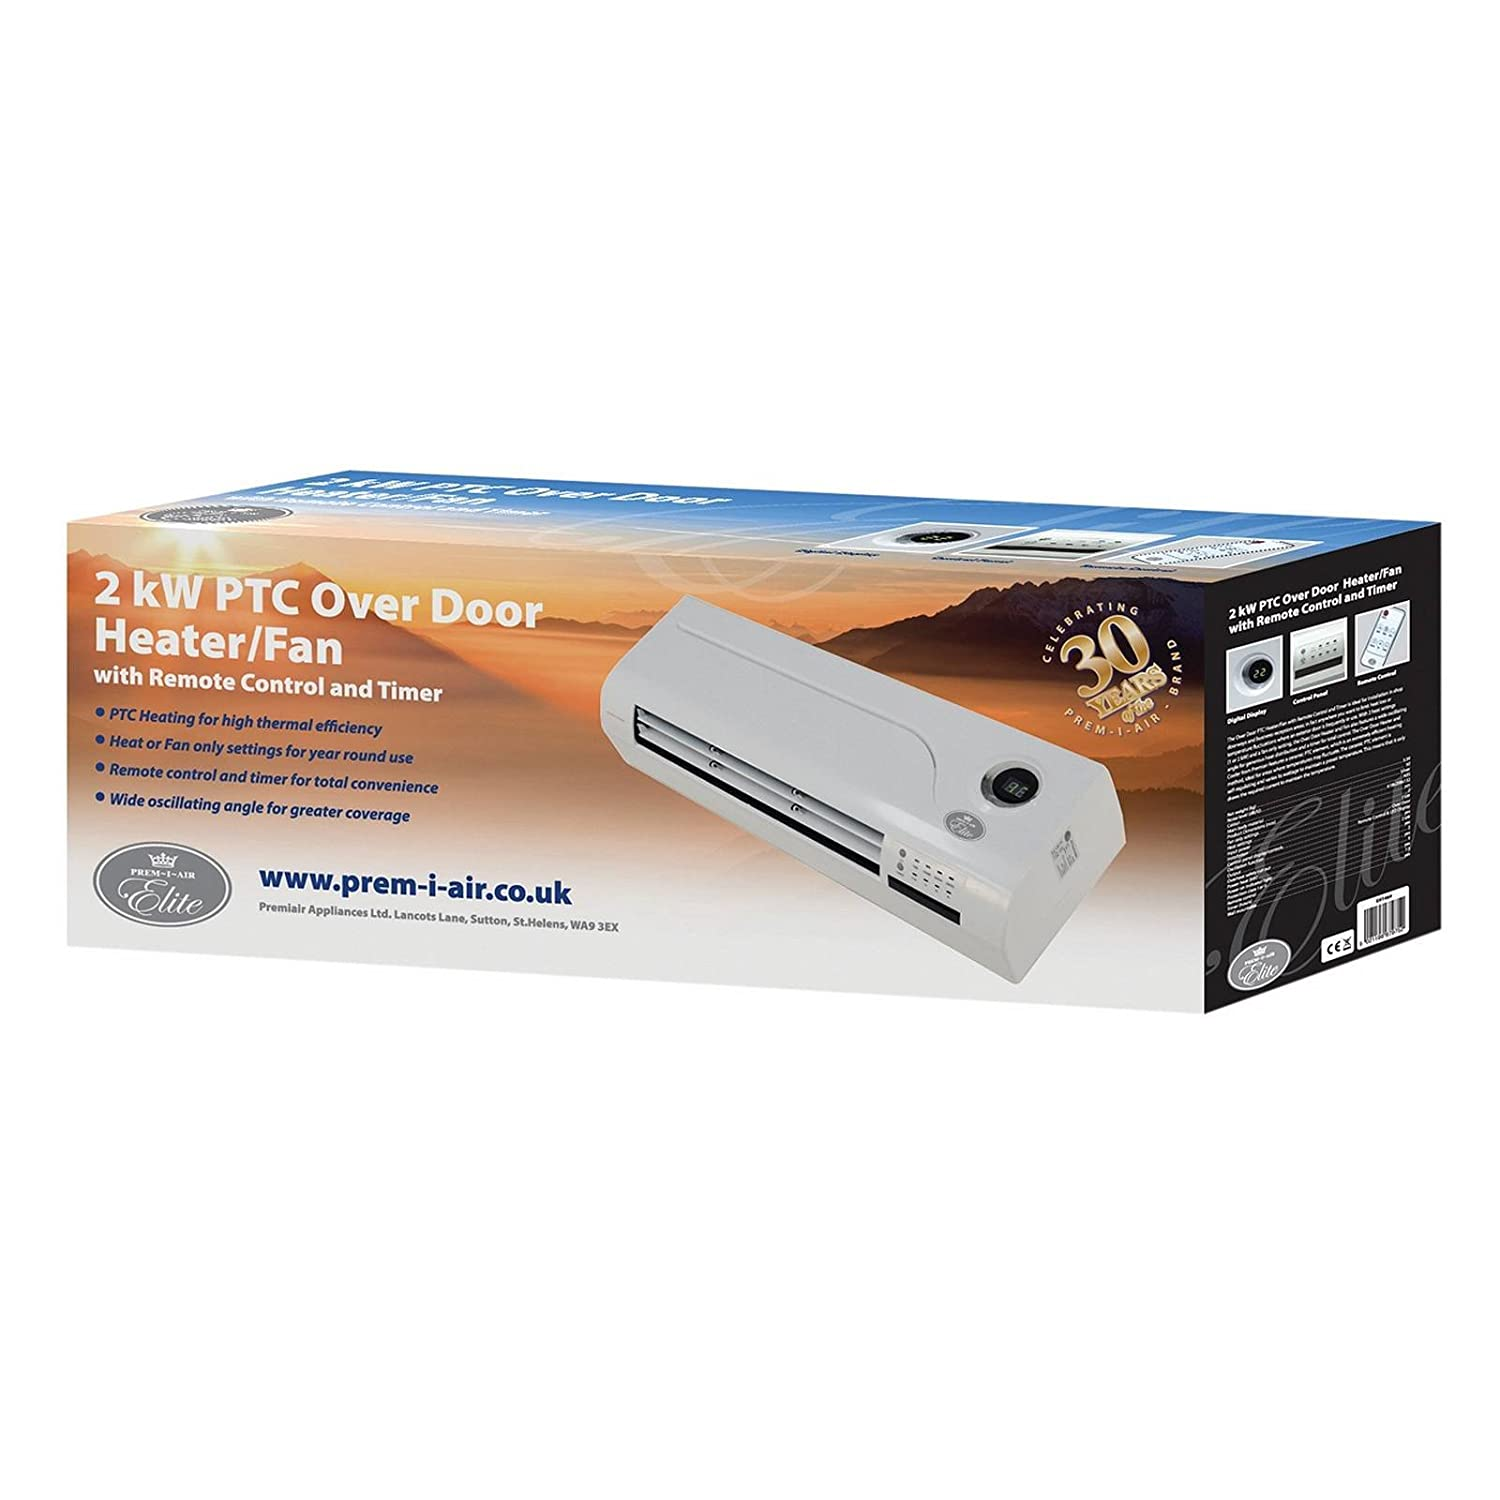 Elegant PTC Over Door Heater And Cold Air Fan   Remote Control With LED Display:  Amazon.co.uk: Large Appliances